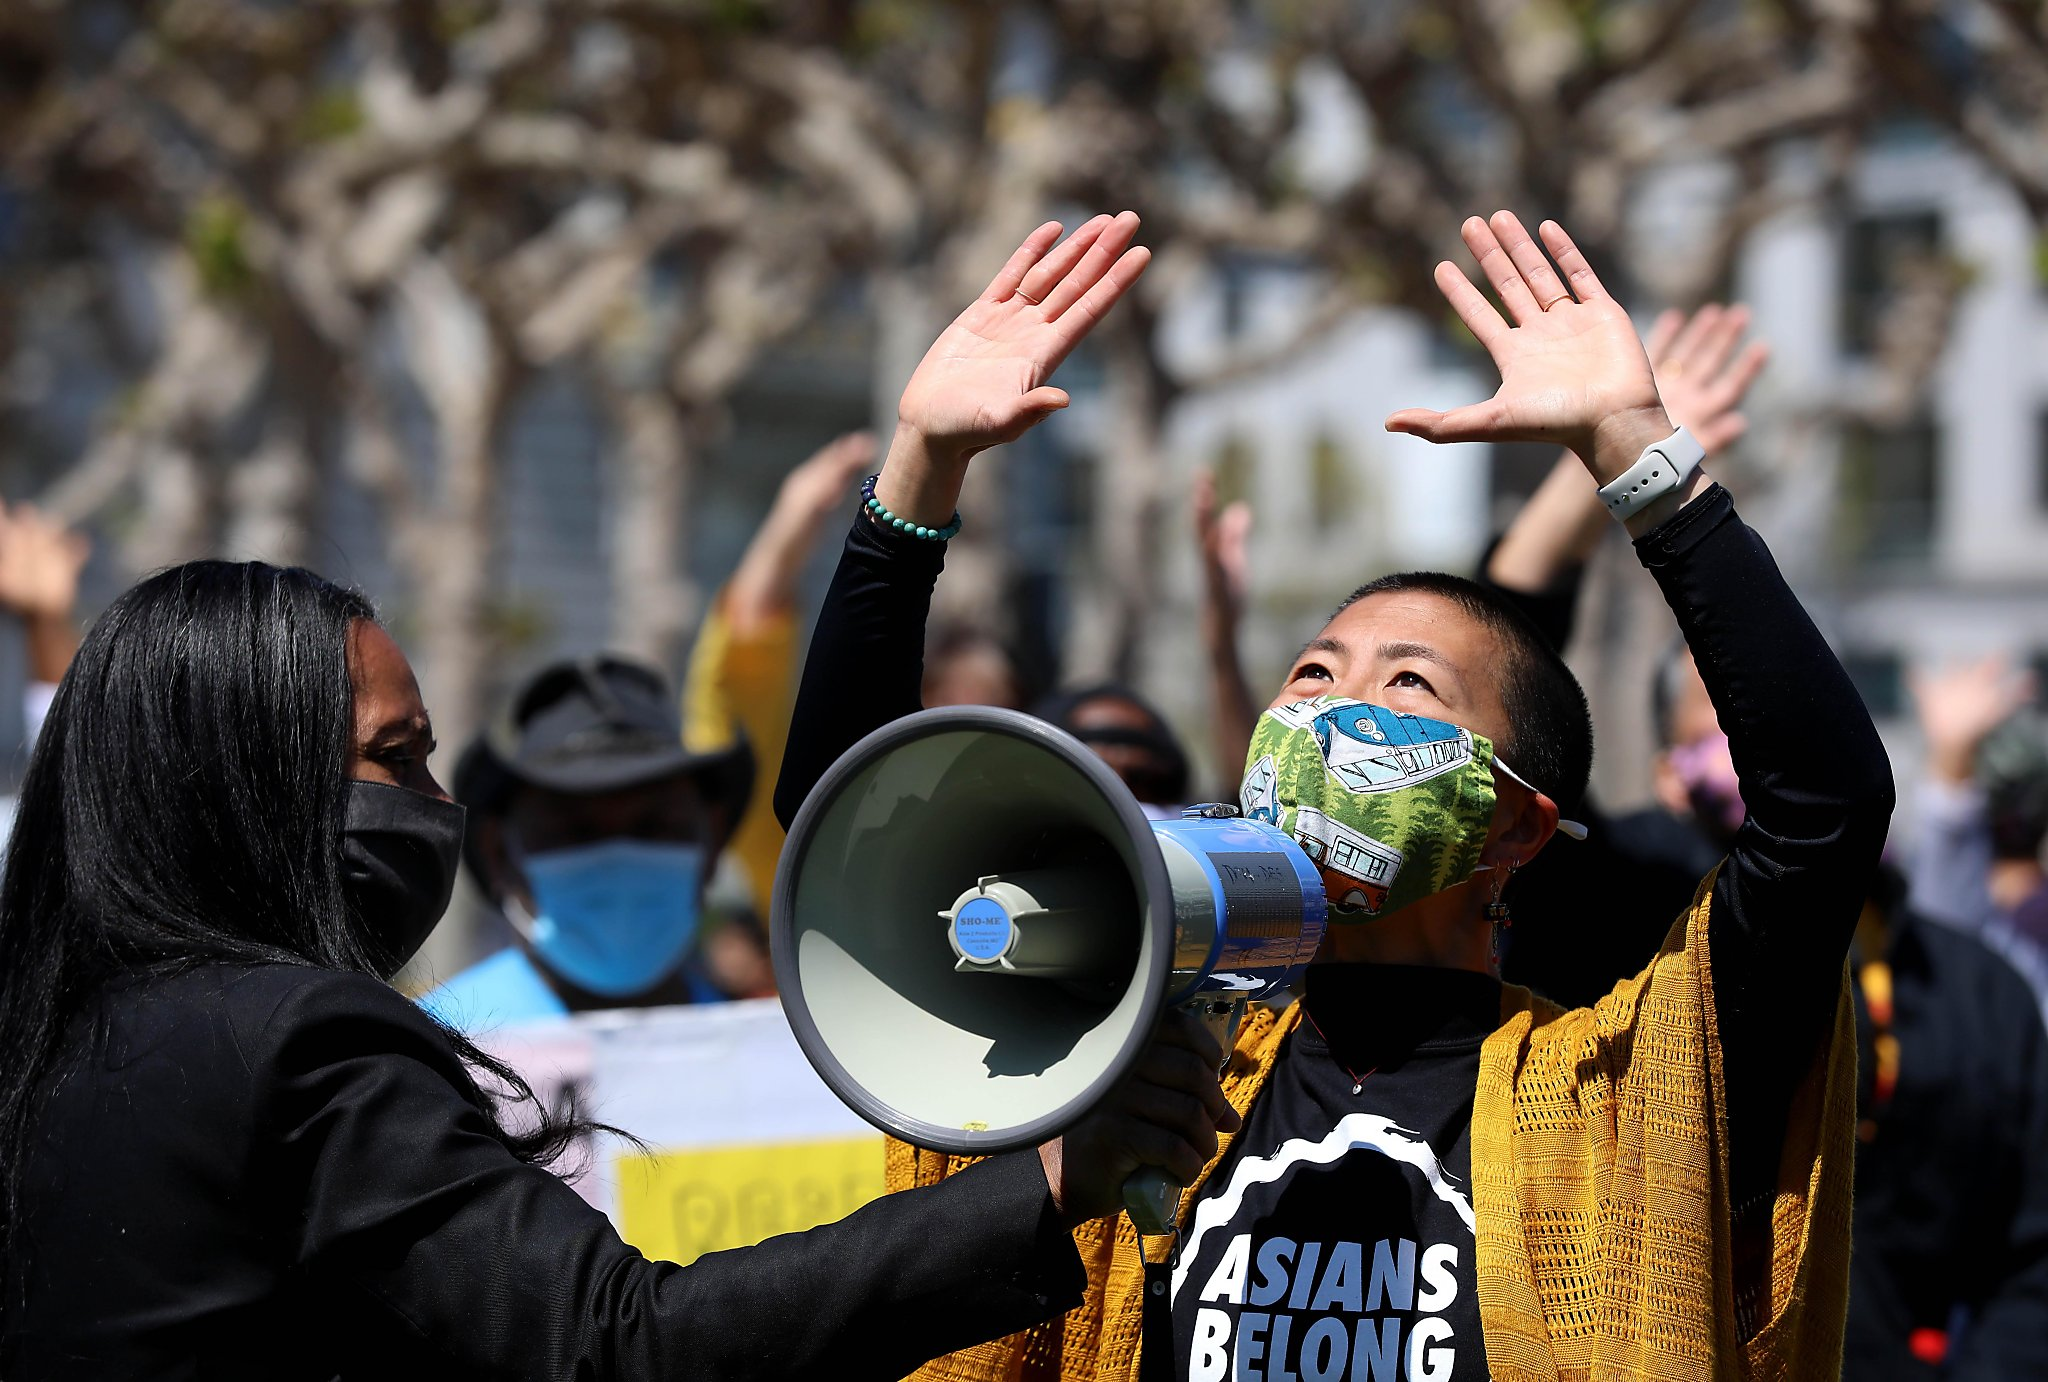 www.sfchronicle.com: Crowd kicks off racial unity event to support Asian and Pacific Islander communities in S.F.